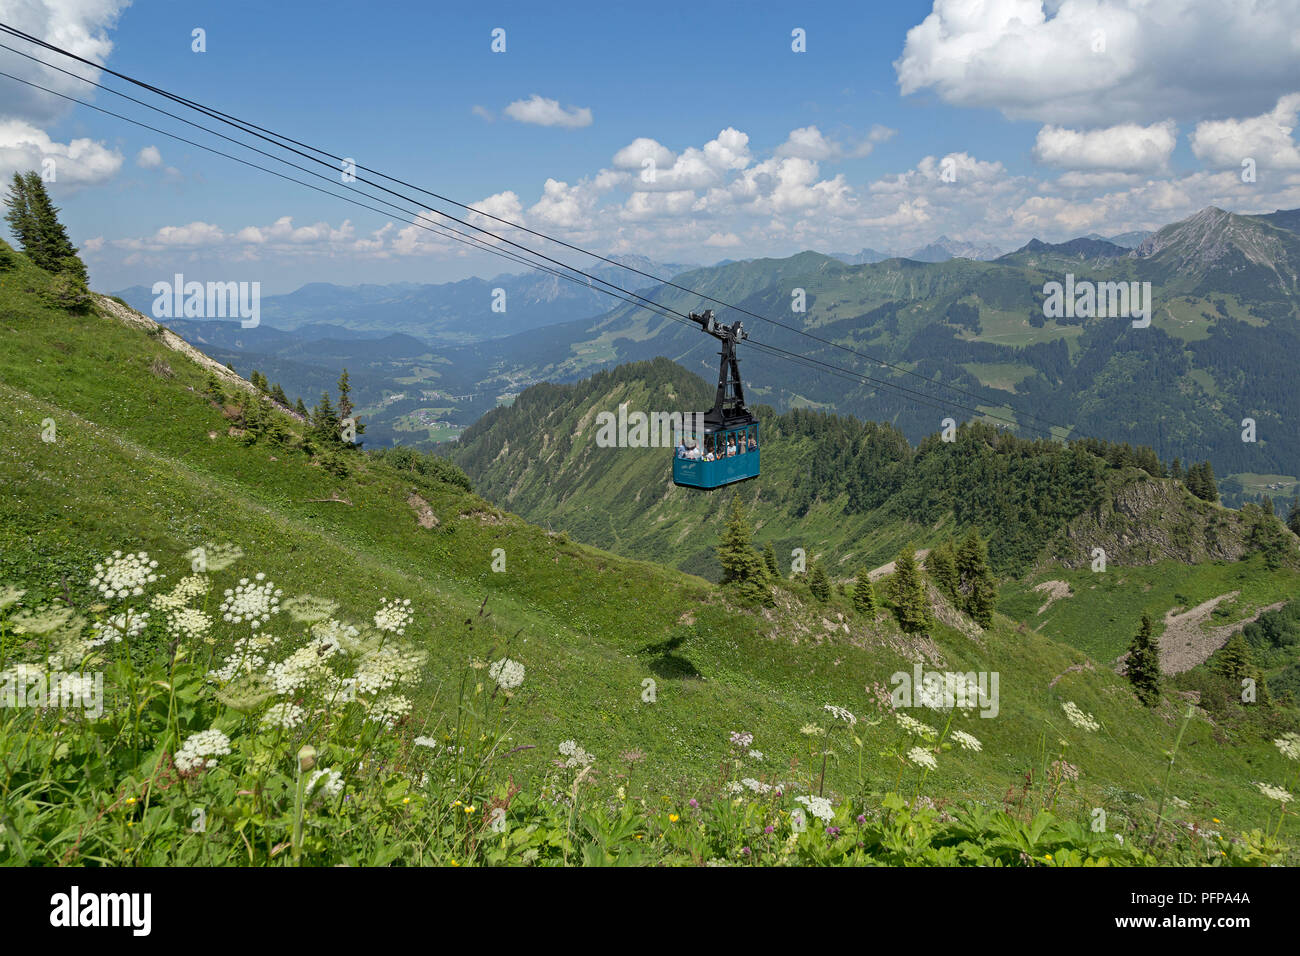 cable car, Walmendinger Horn, Mittelberg, little Walser valley, Austria - Stock Image